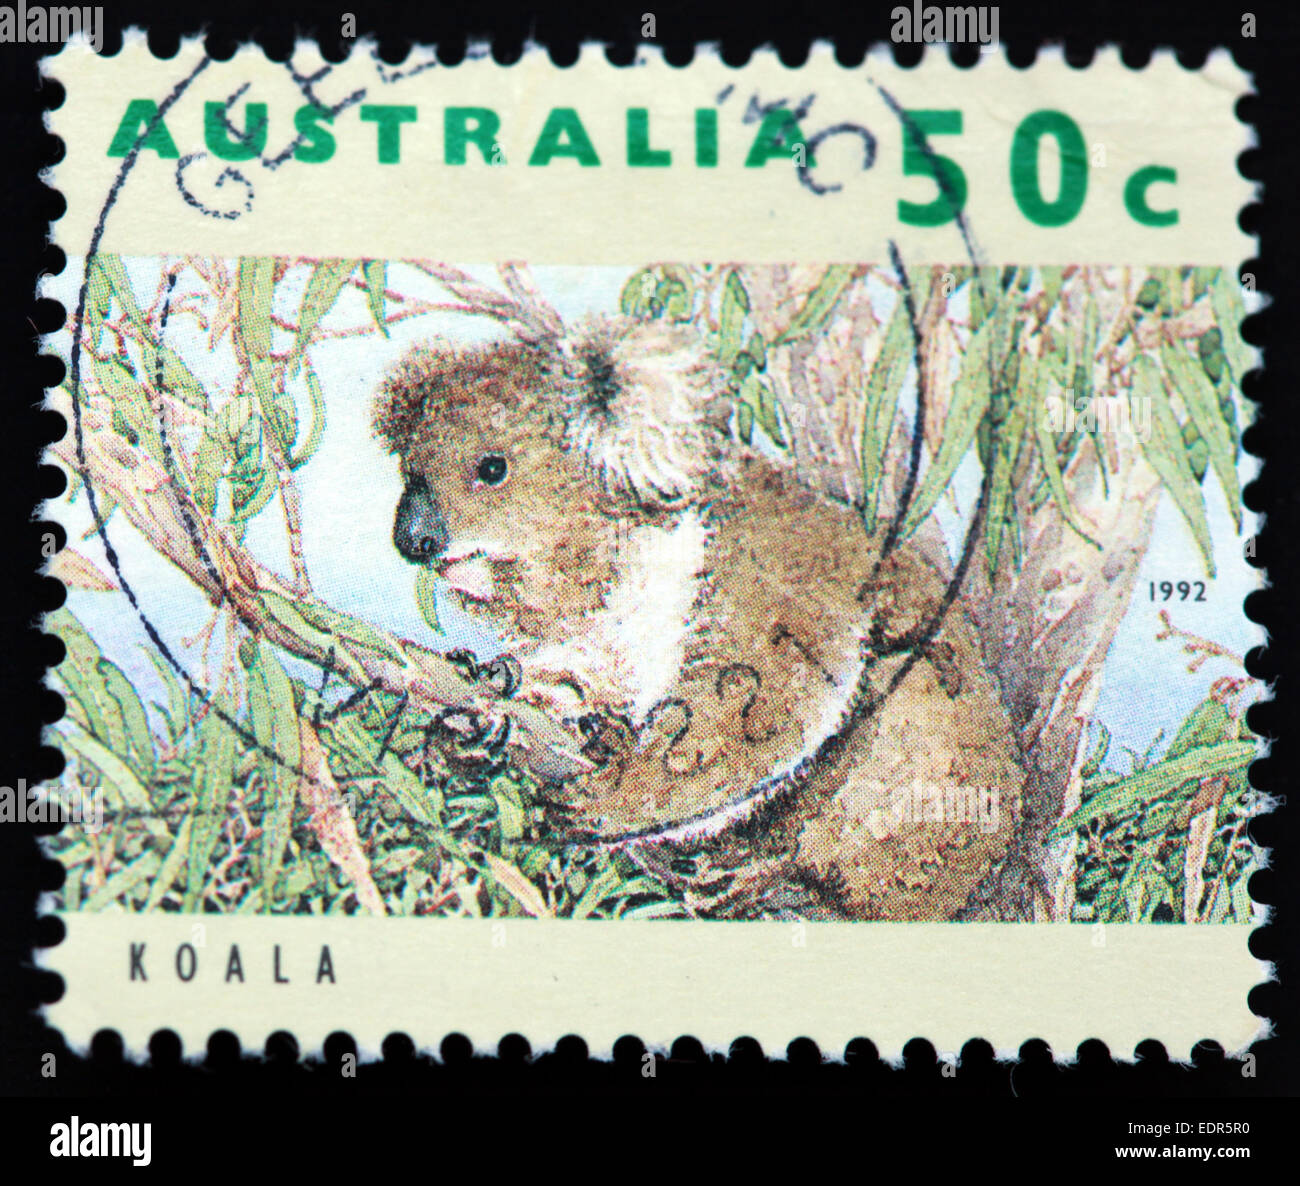 Used and Postmarked,Used,and,postmarked,perforated,Australia,stamp,Used,and,postmarked,Australia,Austrailian,Stamp,post,posting,mail,hobby,perforation,mark,postage,stamp,print,stamp,cancelled,stamp,payment,correspondence,postman,collection,collector,philately,philatelist,lett,Gotonysmith,koala bear,philately,philatelist,letter,arboreal,herbivorous,marsupial,price,history,retro,Australian,Vintage,delivery,date,eucalypt,woodlands,eucalyptus,wood,forest,tree,trees,relationship,communication,Oz,Australia,DownUnder,classic rare unique Austrailian financial,investment,invest,value,British,empire,nation,canceled,printed on black background,close-up,closeup,close,up,sent,send,philately,mailing,shipping,postoffice,office,isolated,circa,special,colour,color,postmarked,marked,airmail,aged,antique,retro,cutting,historic,old,stamps,collection,stamp collection,album,Timbre,Sello,Stempel,Selo,Down Under,Black background